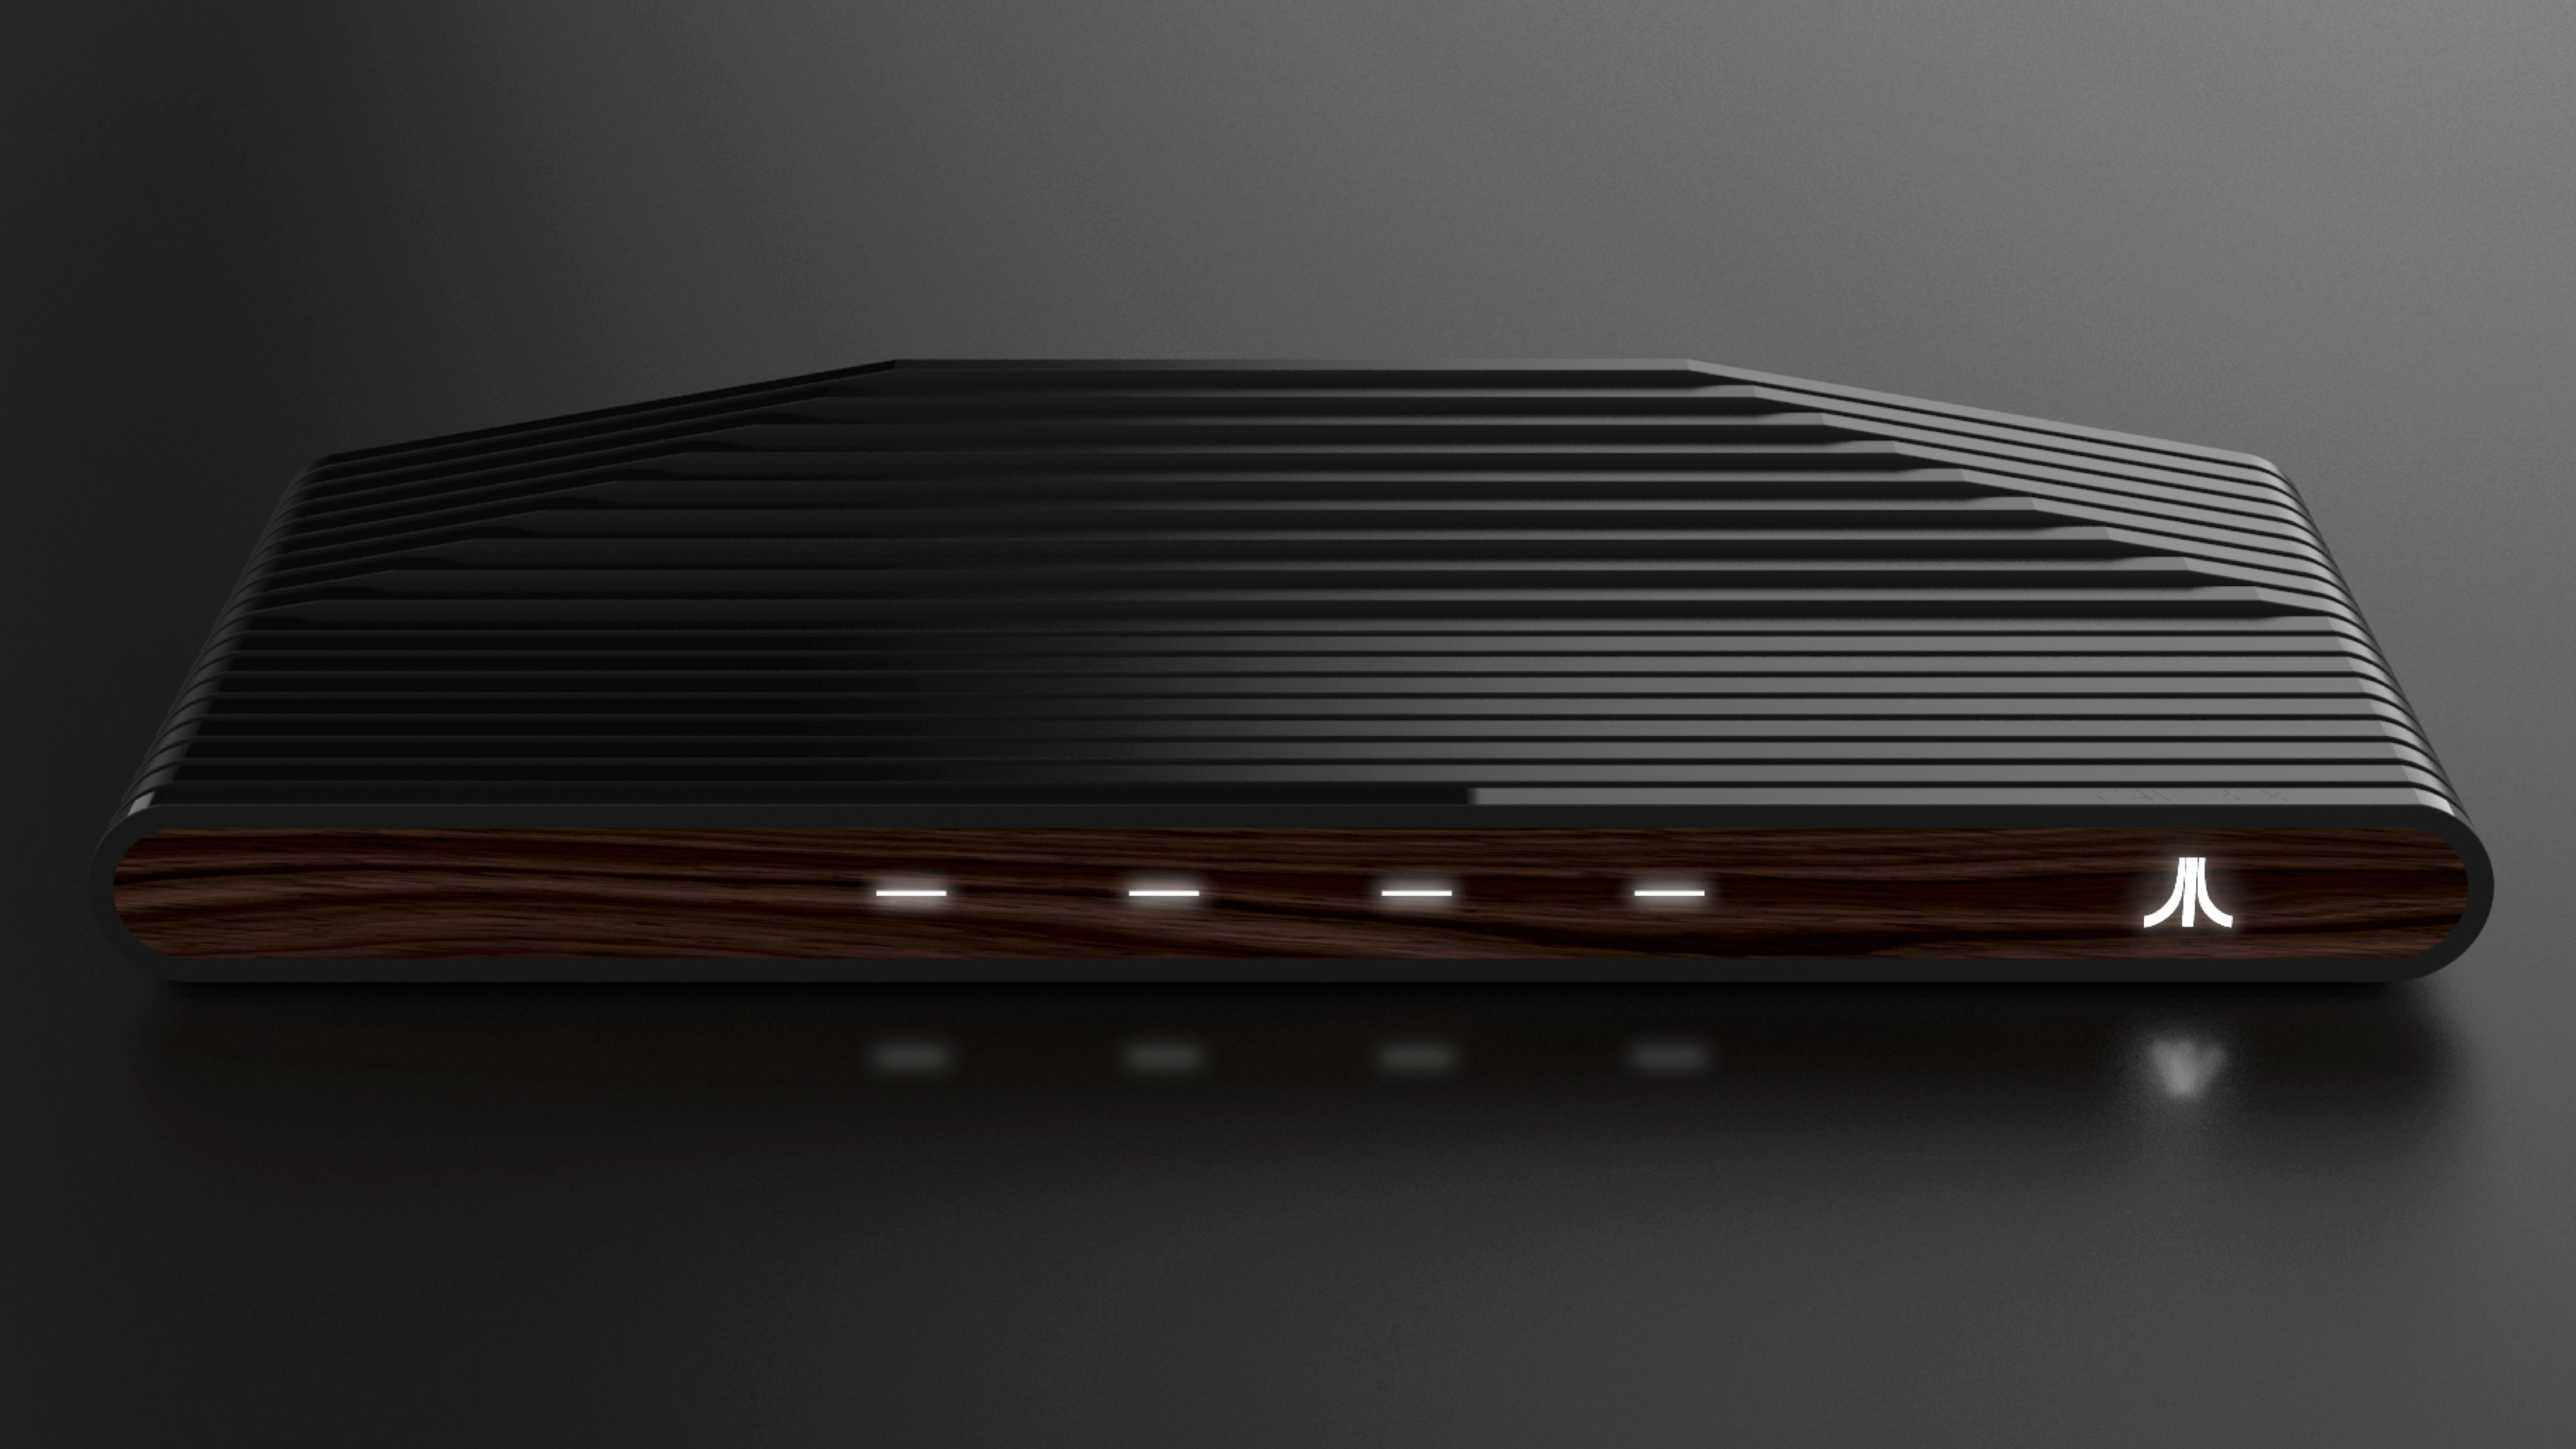 New Images and Details Released for the Ataribox